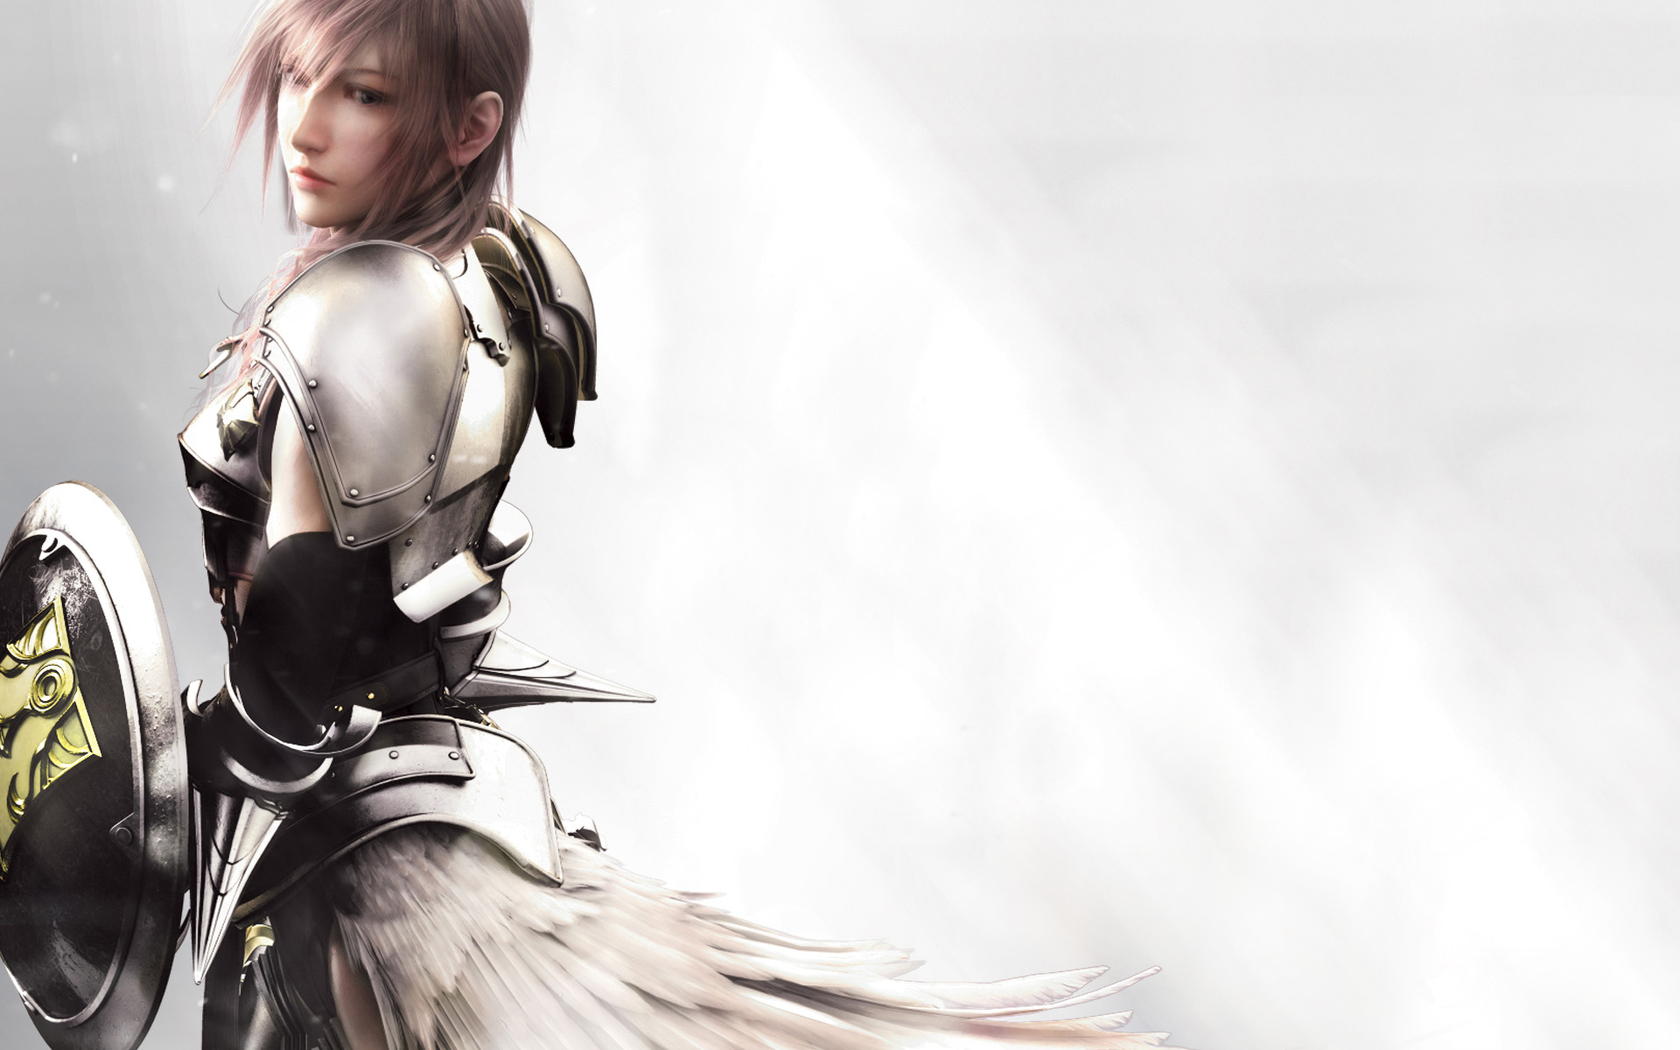 final fantasy 13 wallpapers hd - wallpapersafari